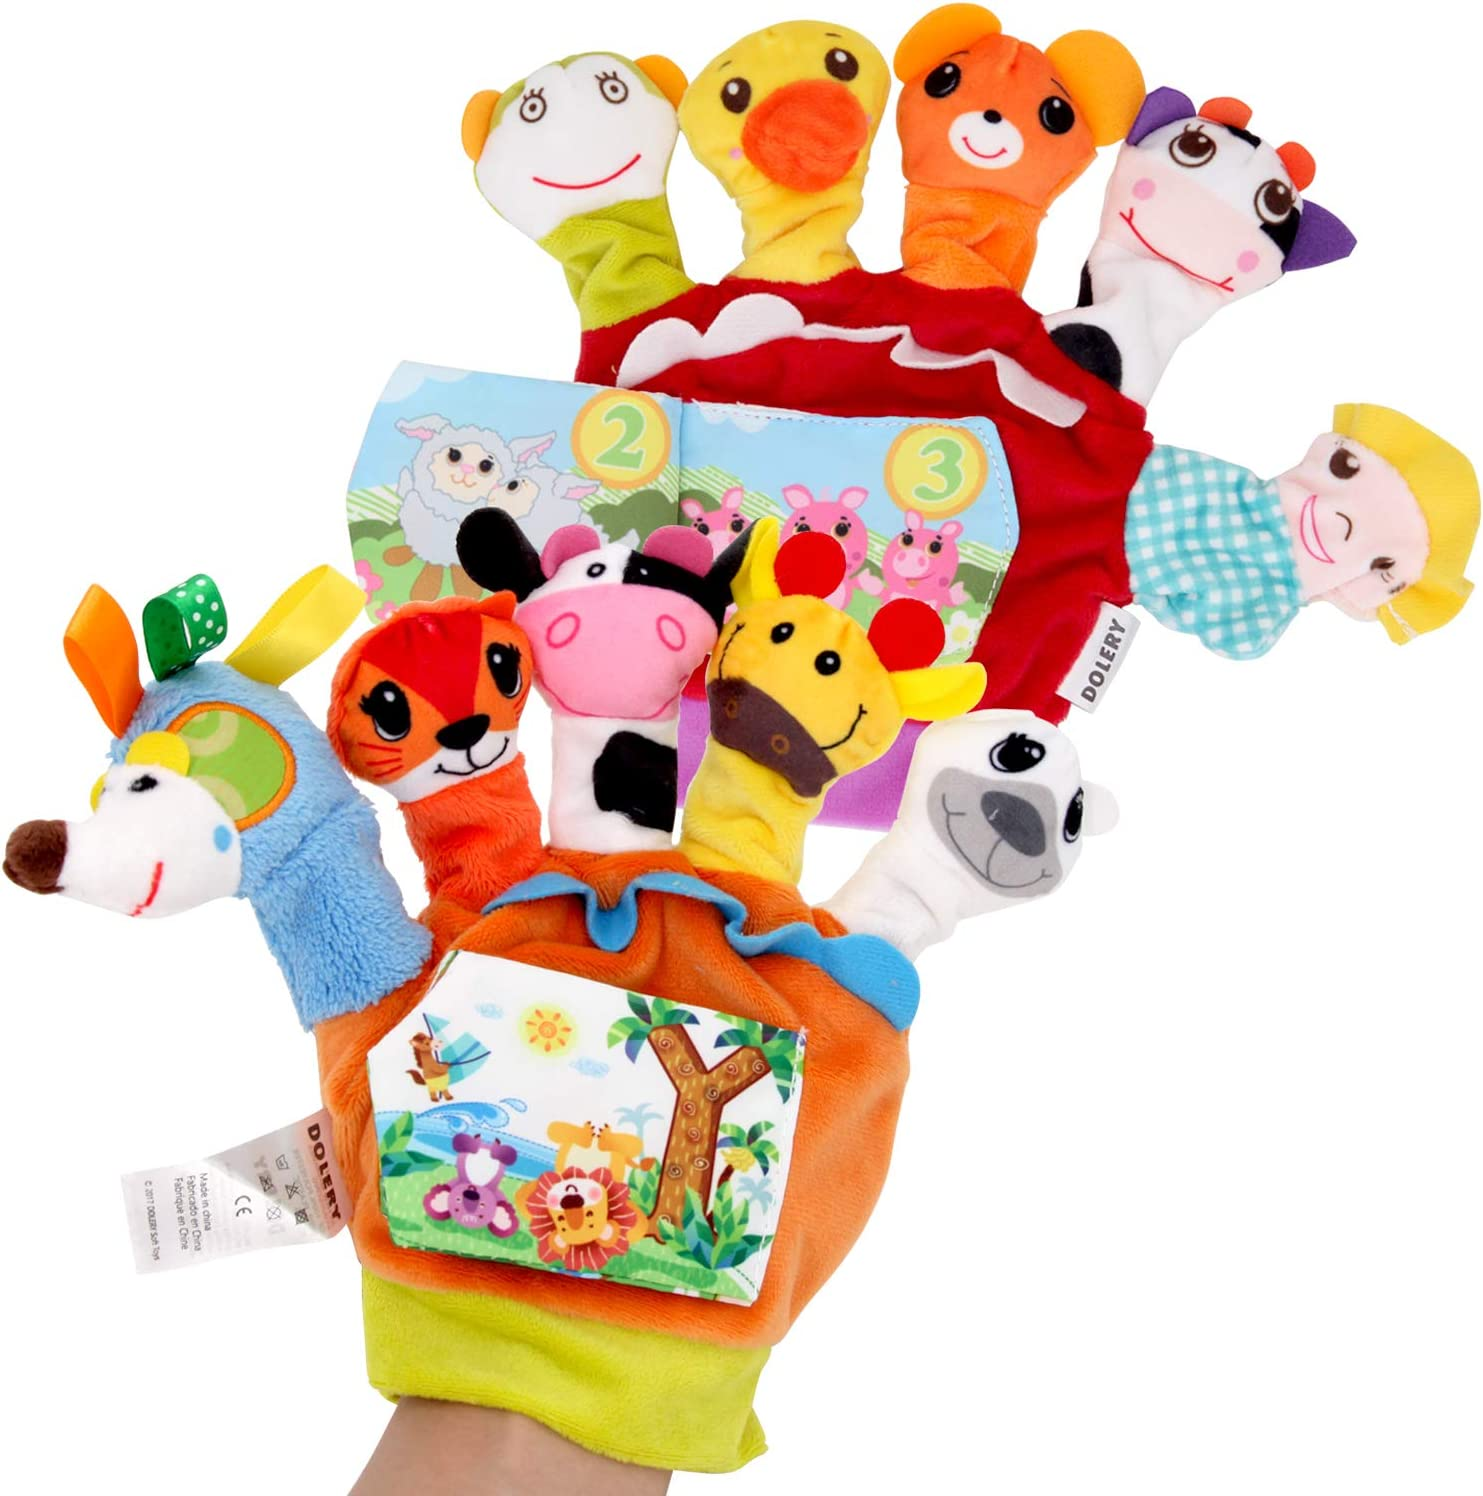 Sealive Farm Animals Hand Puppets Set with Cloth Book Story Telling, 10 pcs Finger Puppet Soft Gloves Handpuppets Toys for Kids Toddlers